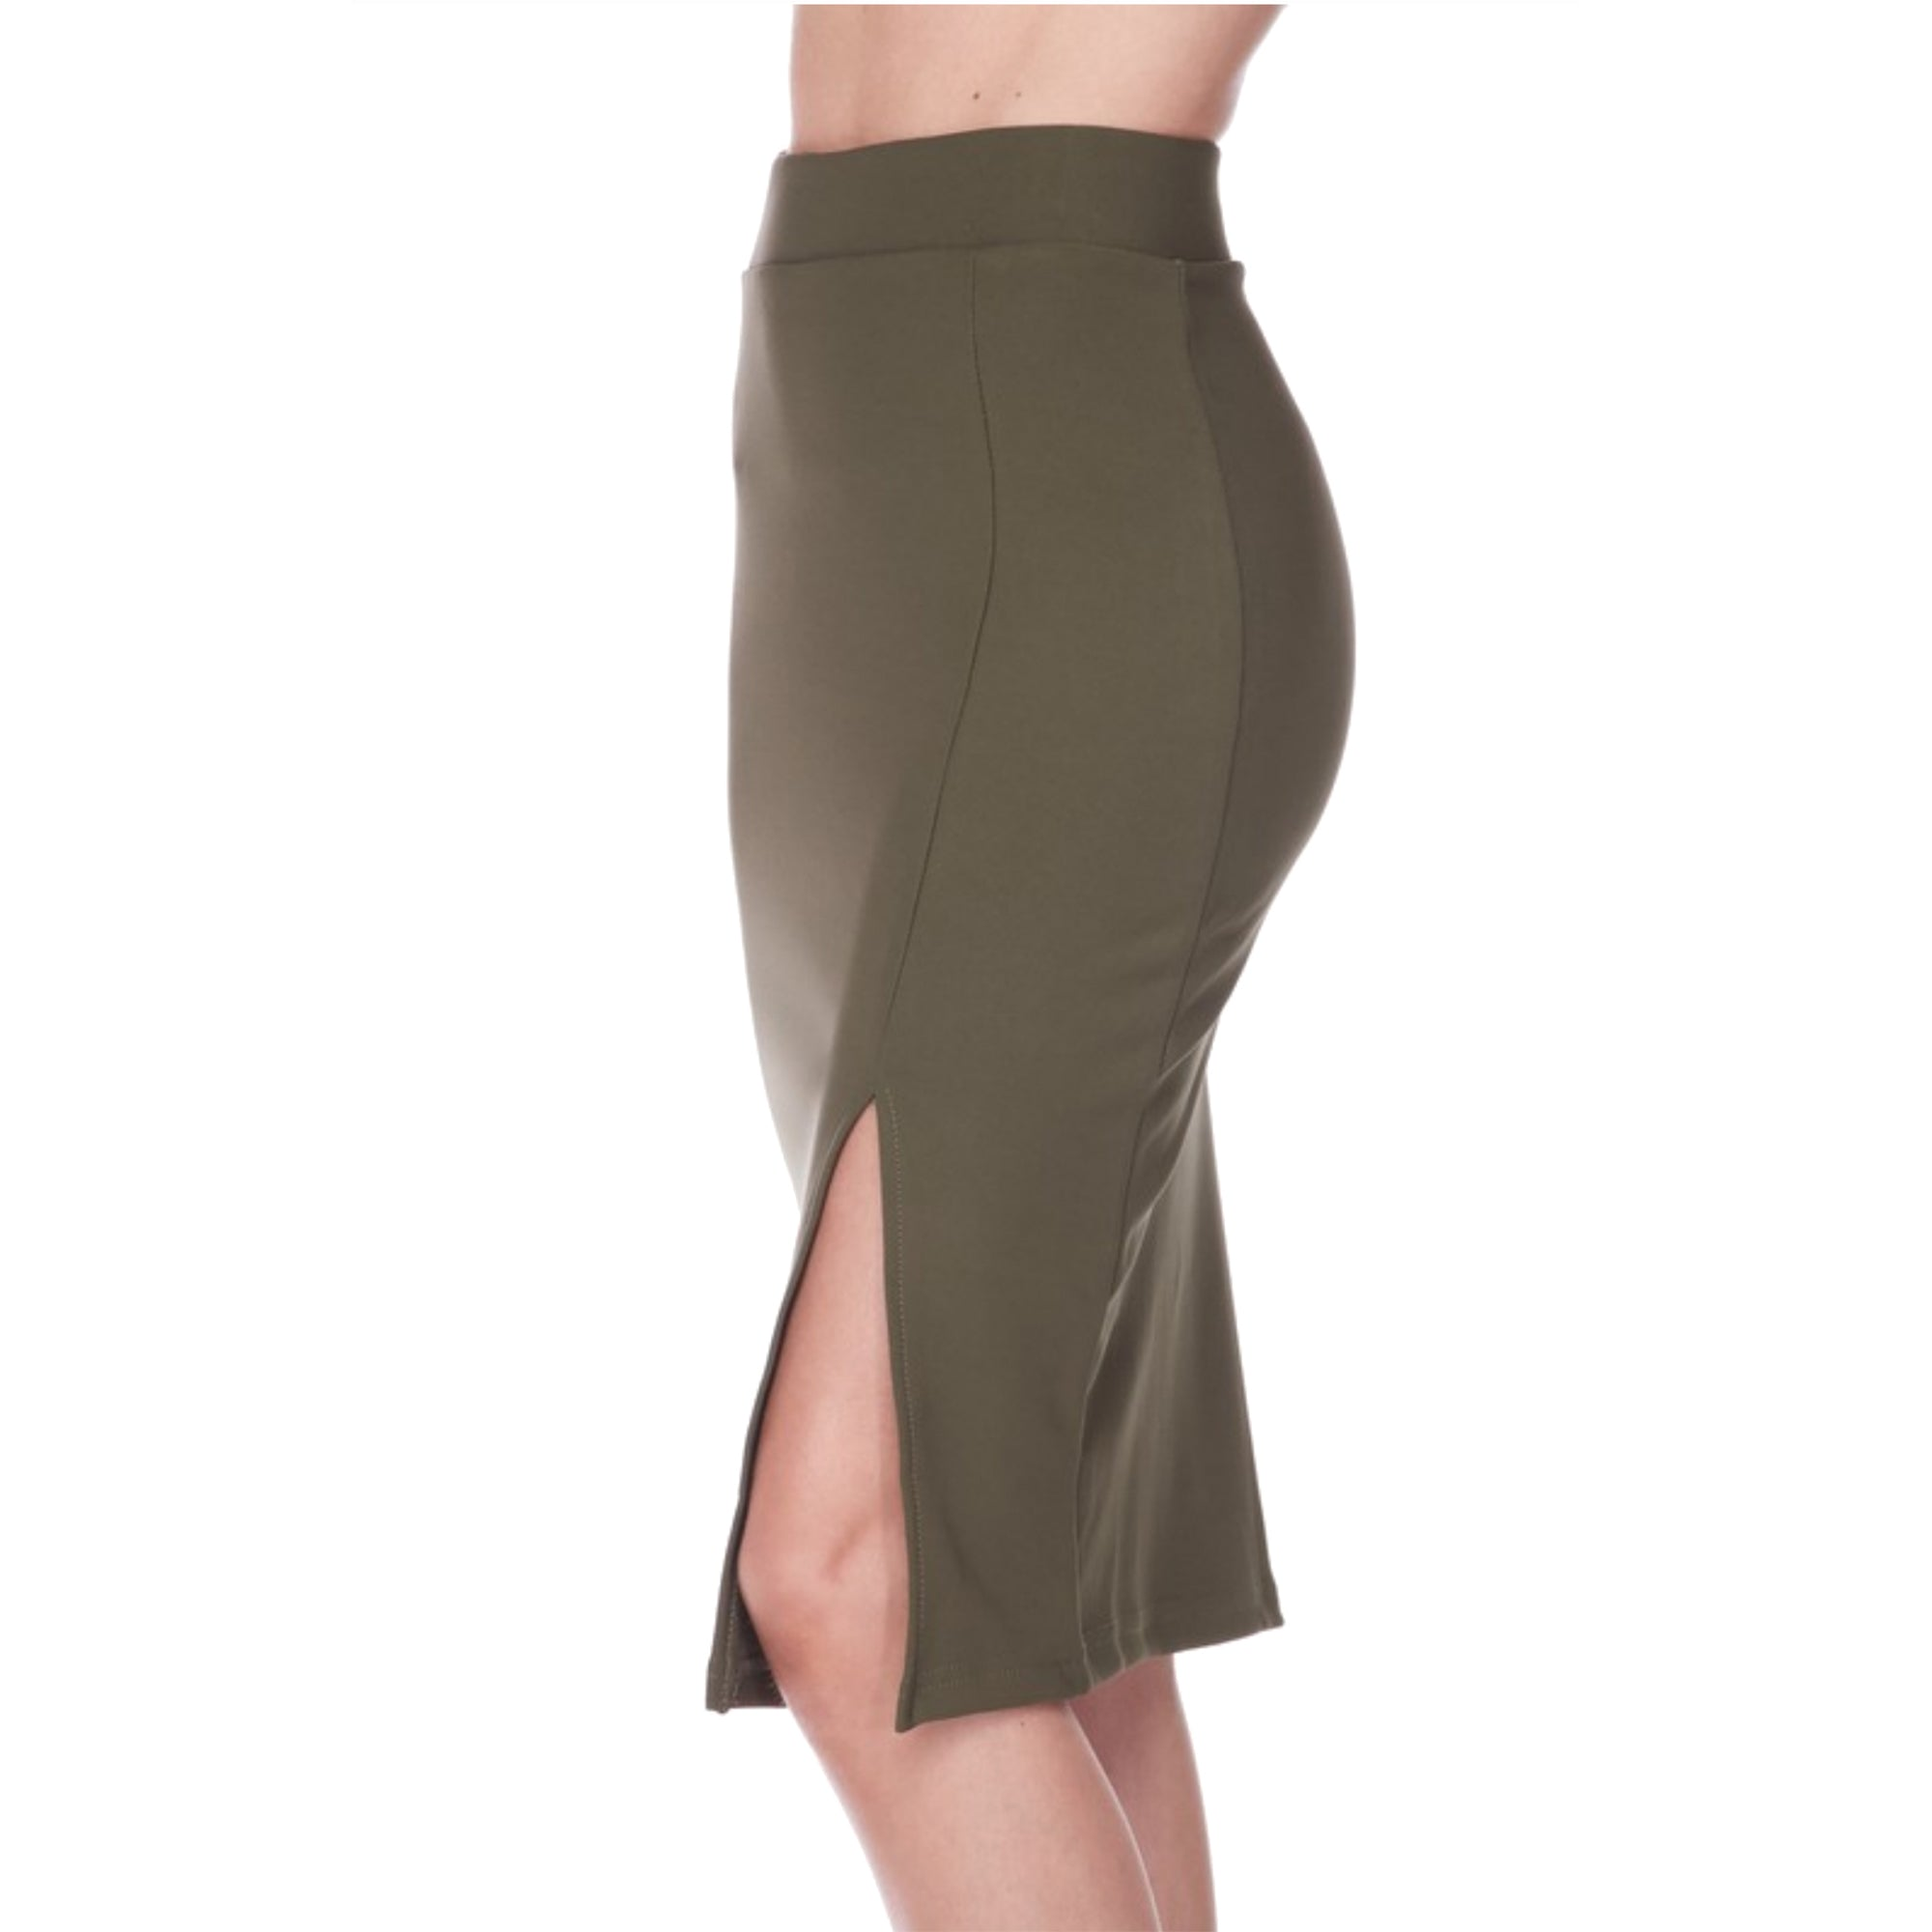 Women's Fitted Pencil Skirt